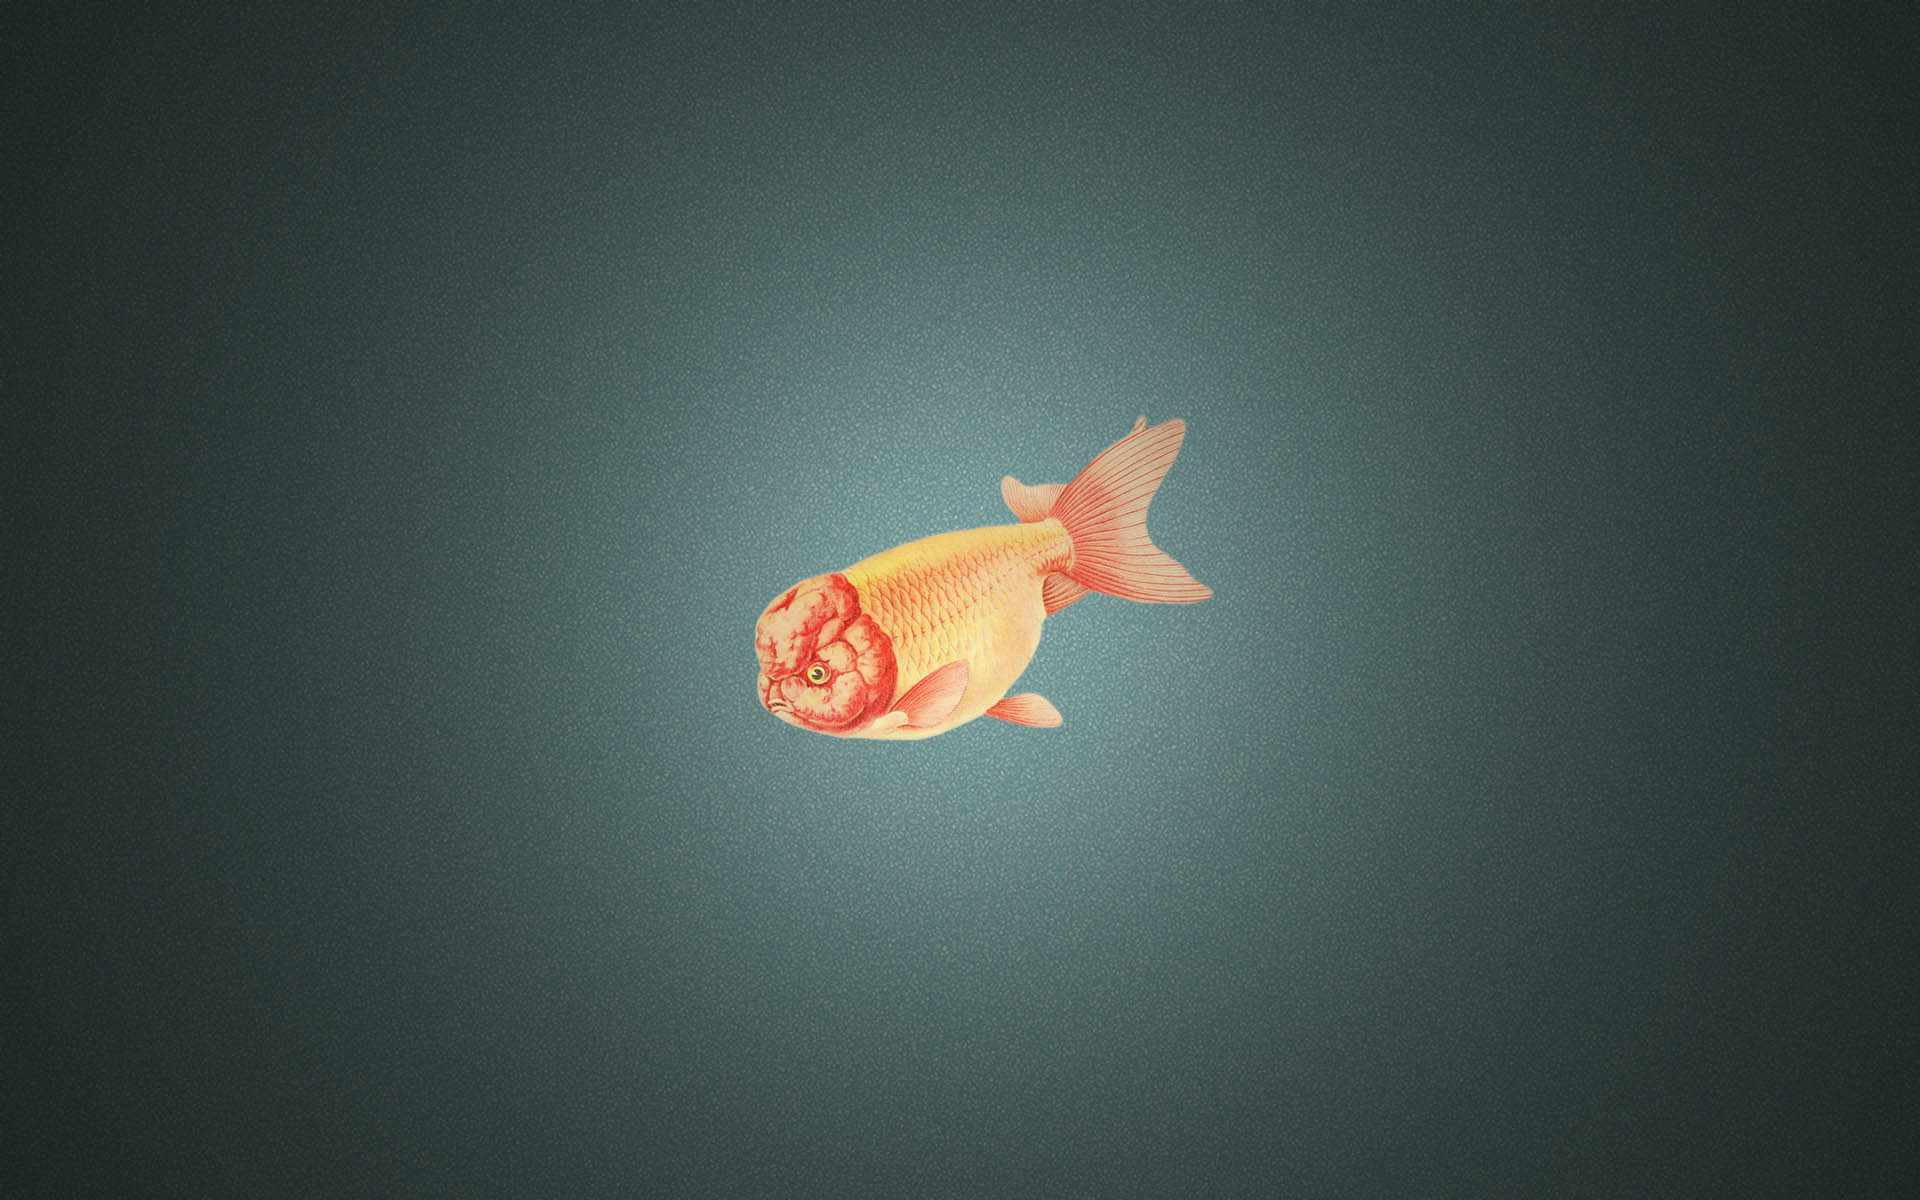 Image Ranchu Goldfish Wallpapers And Stock Photos